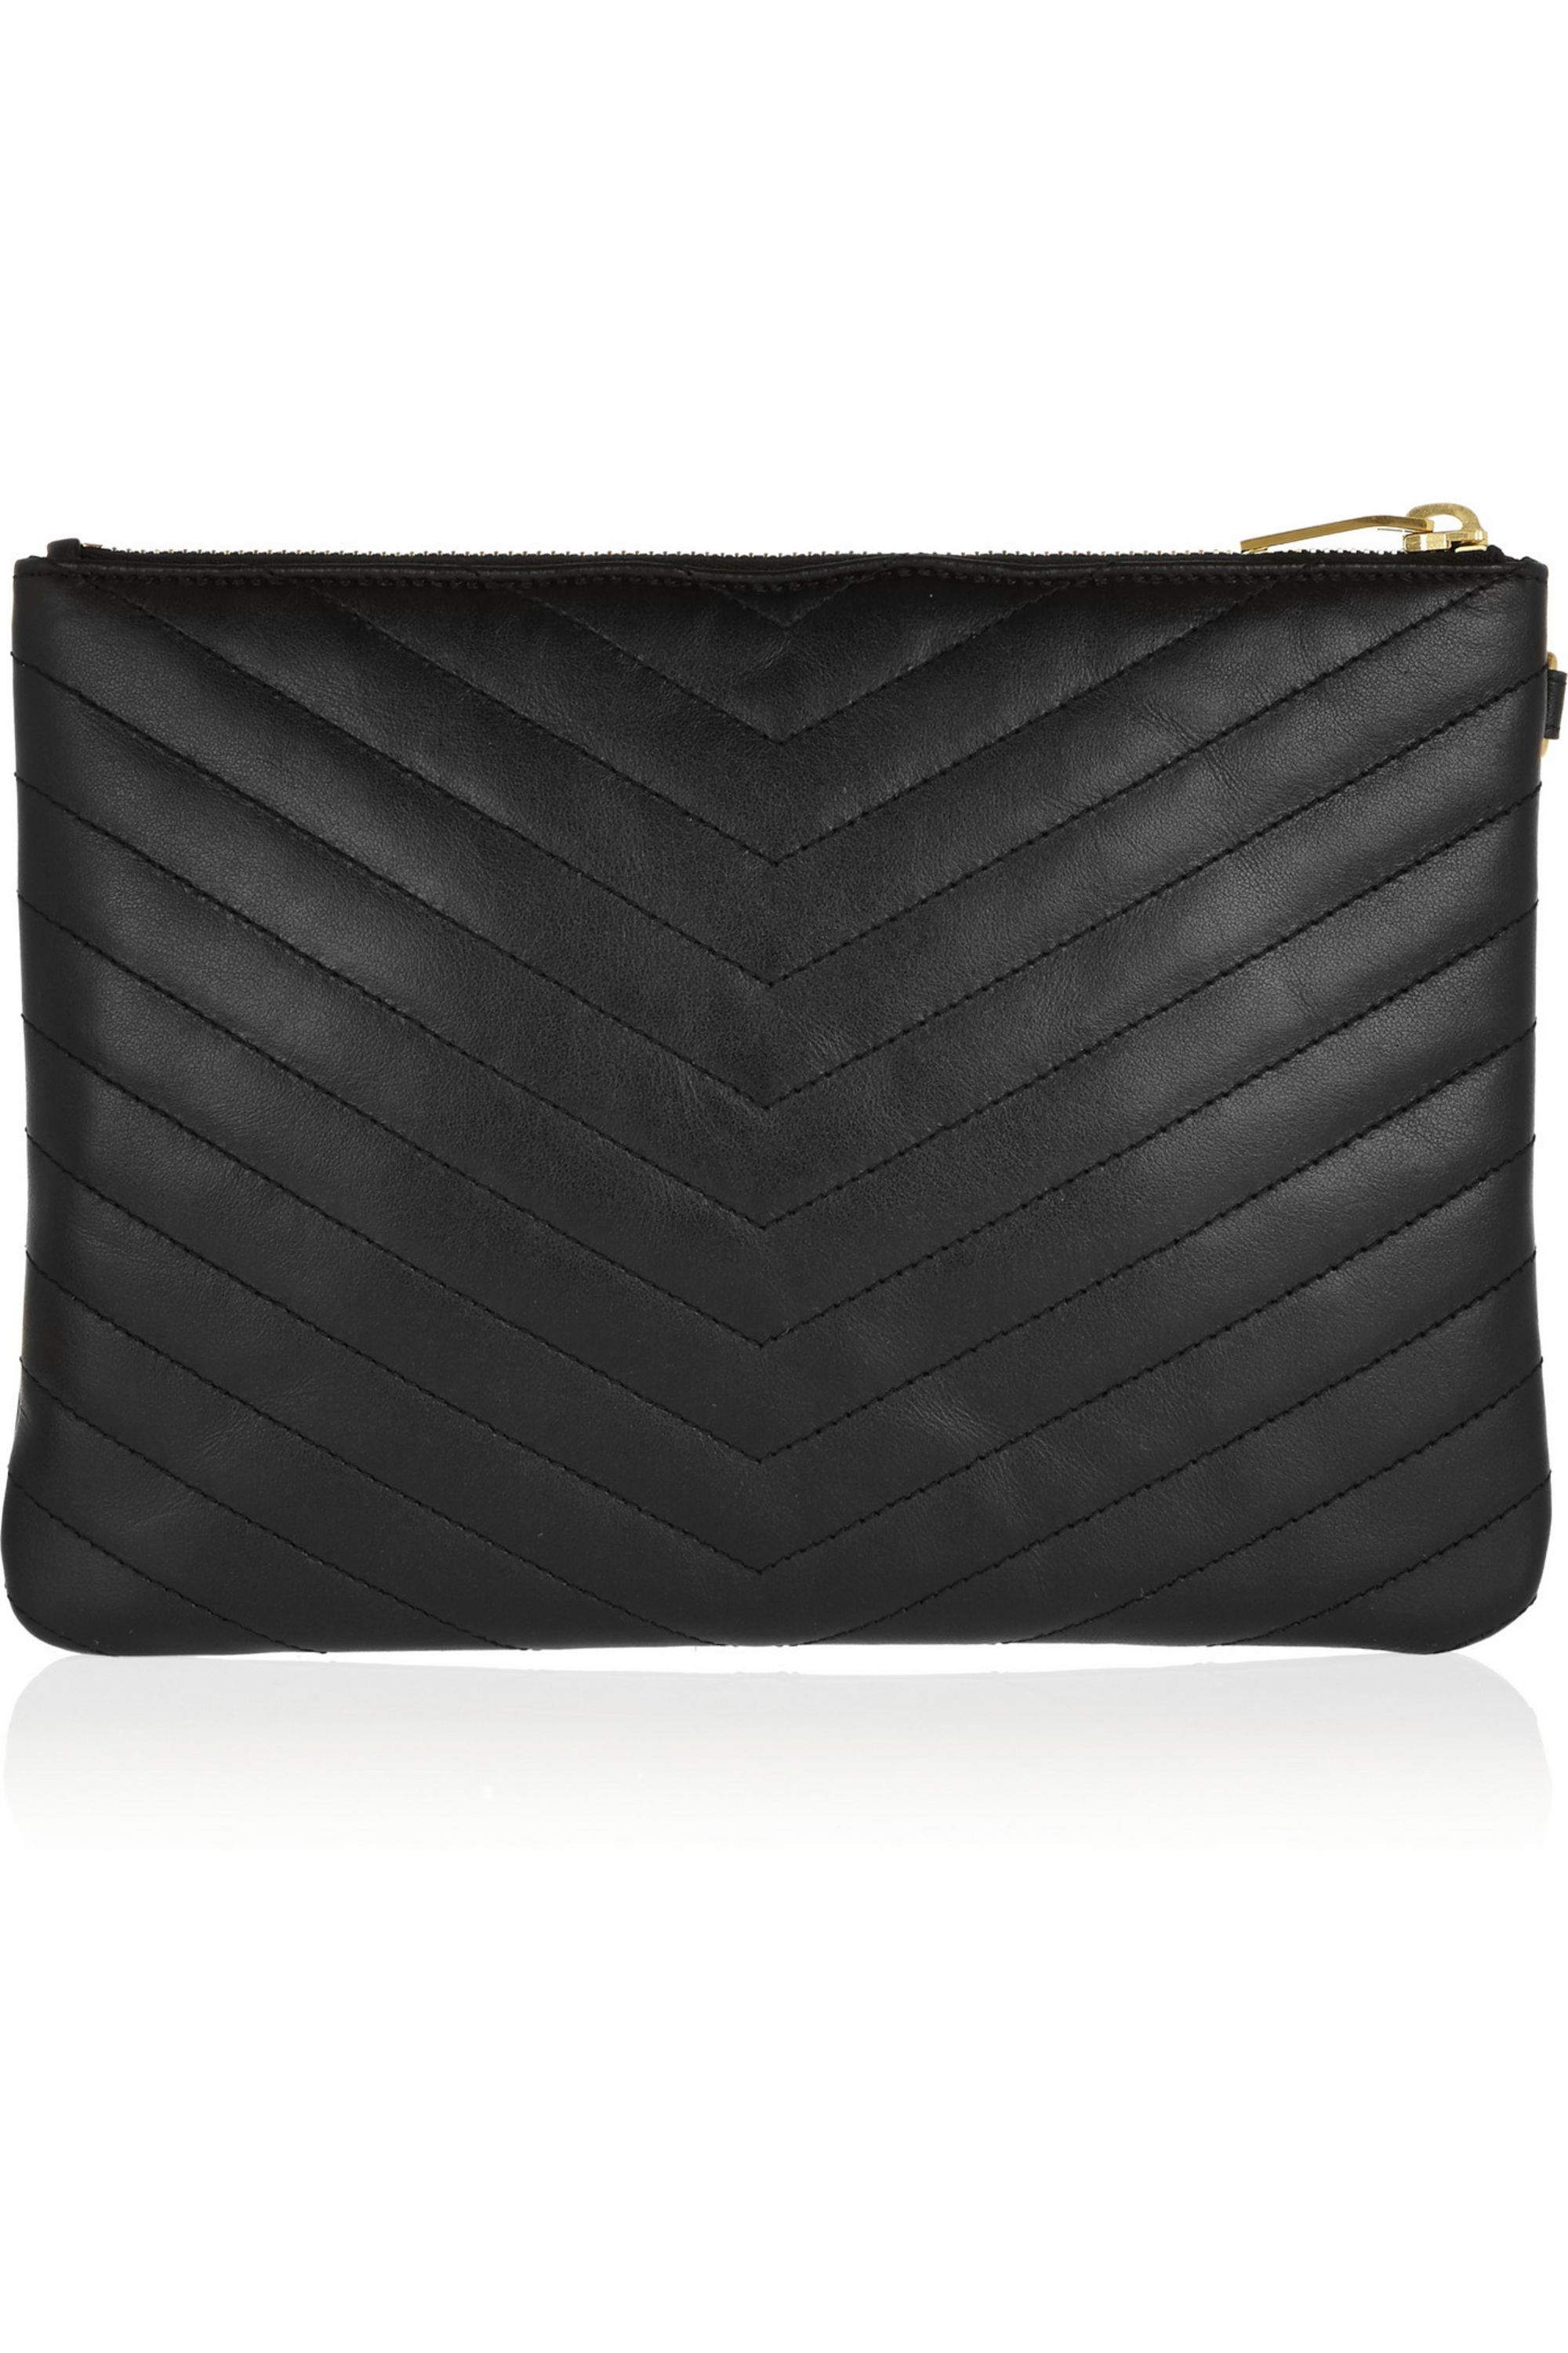 SAINT LAURENT Monogramme quilted leather clutch